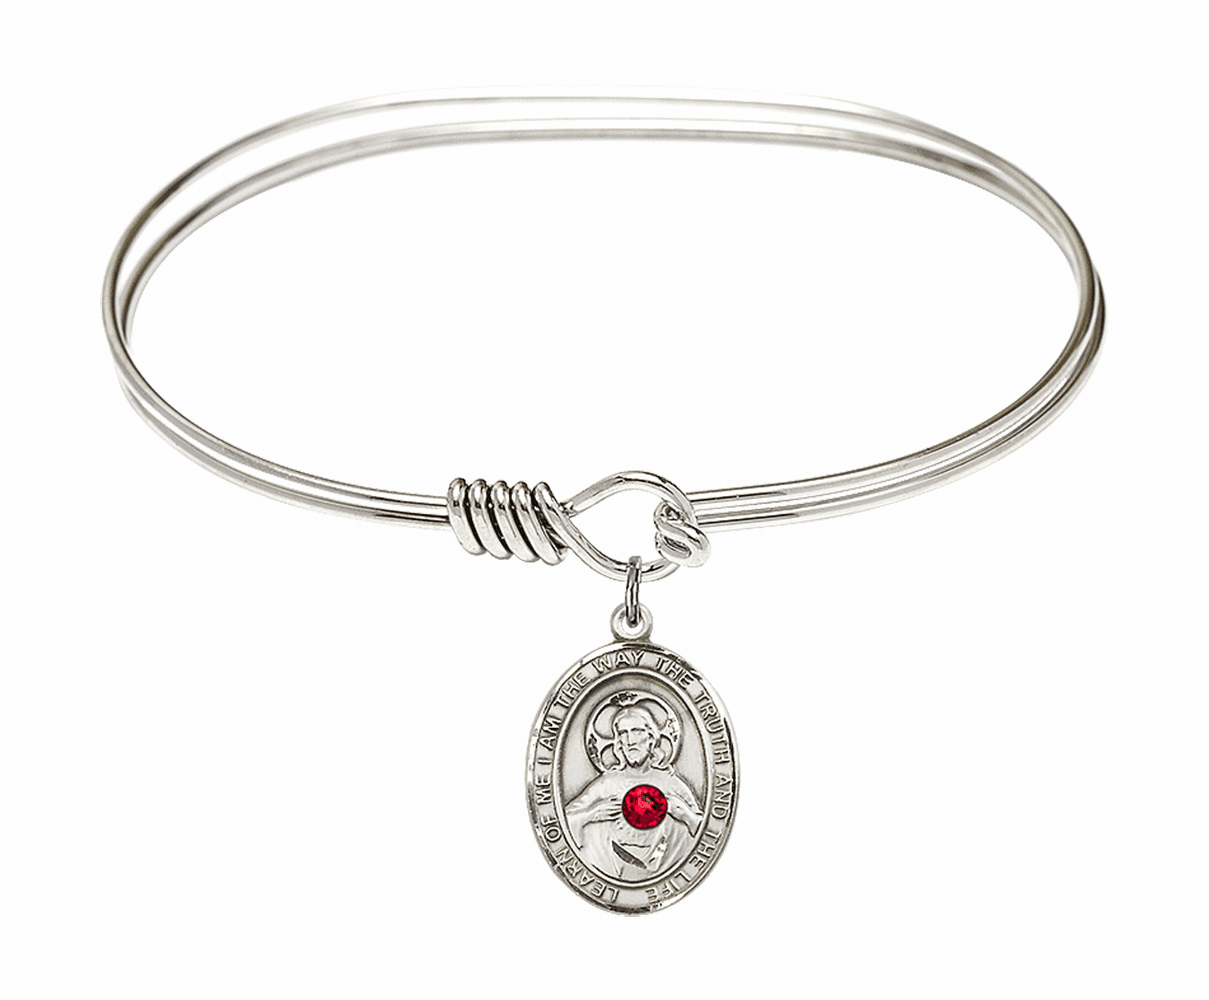 Round Eye Hook Bangle Bracelet w/Red Crystal Scapular Sterling Silver Charm by Bliss Mfg